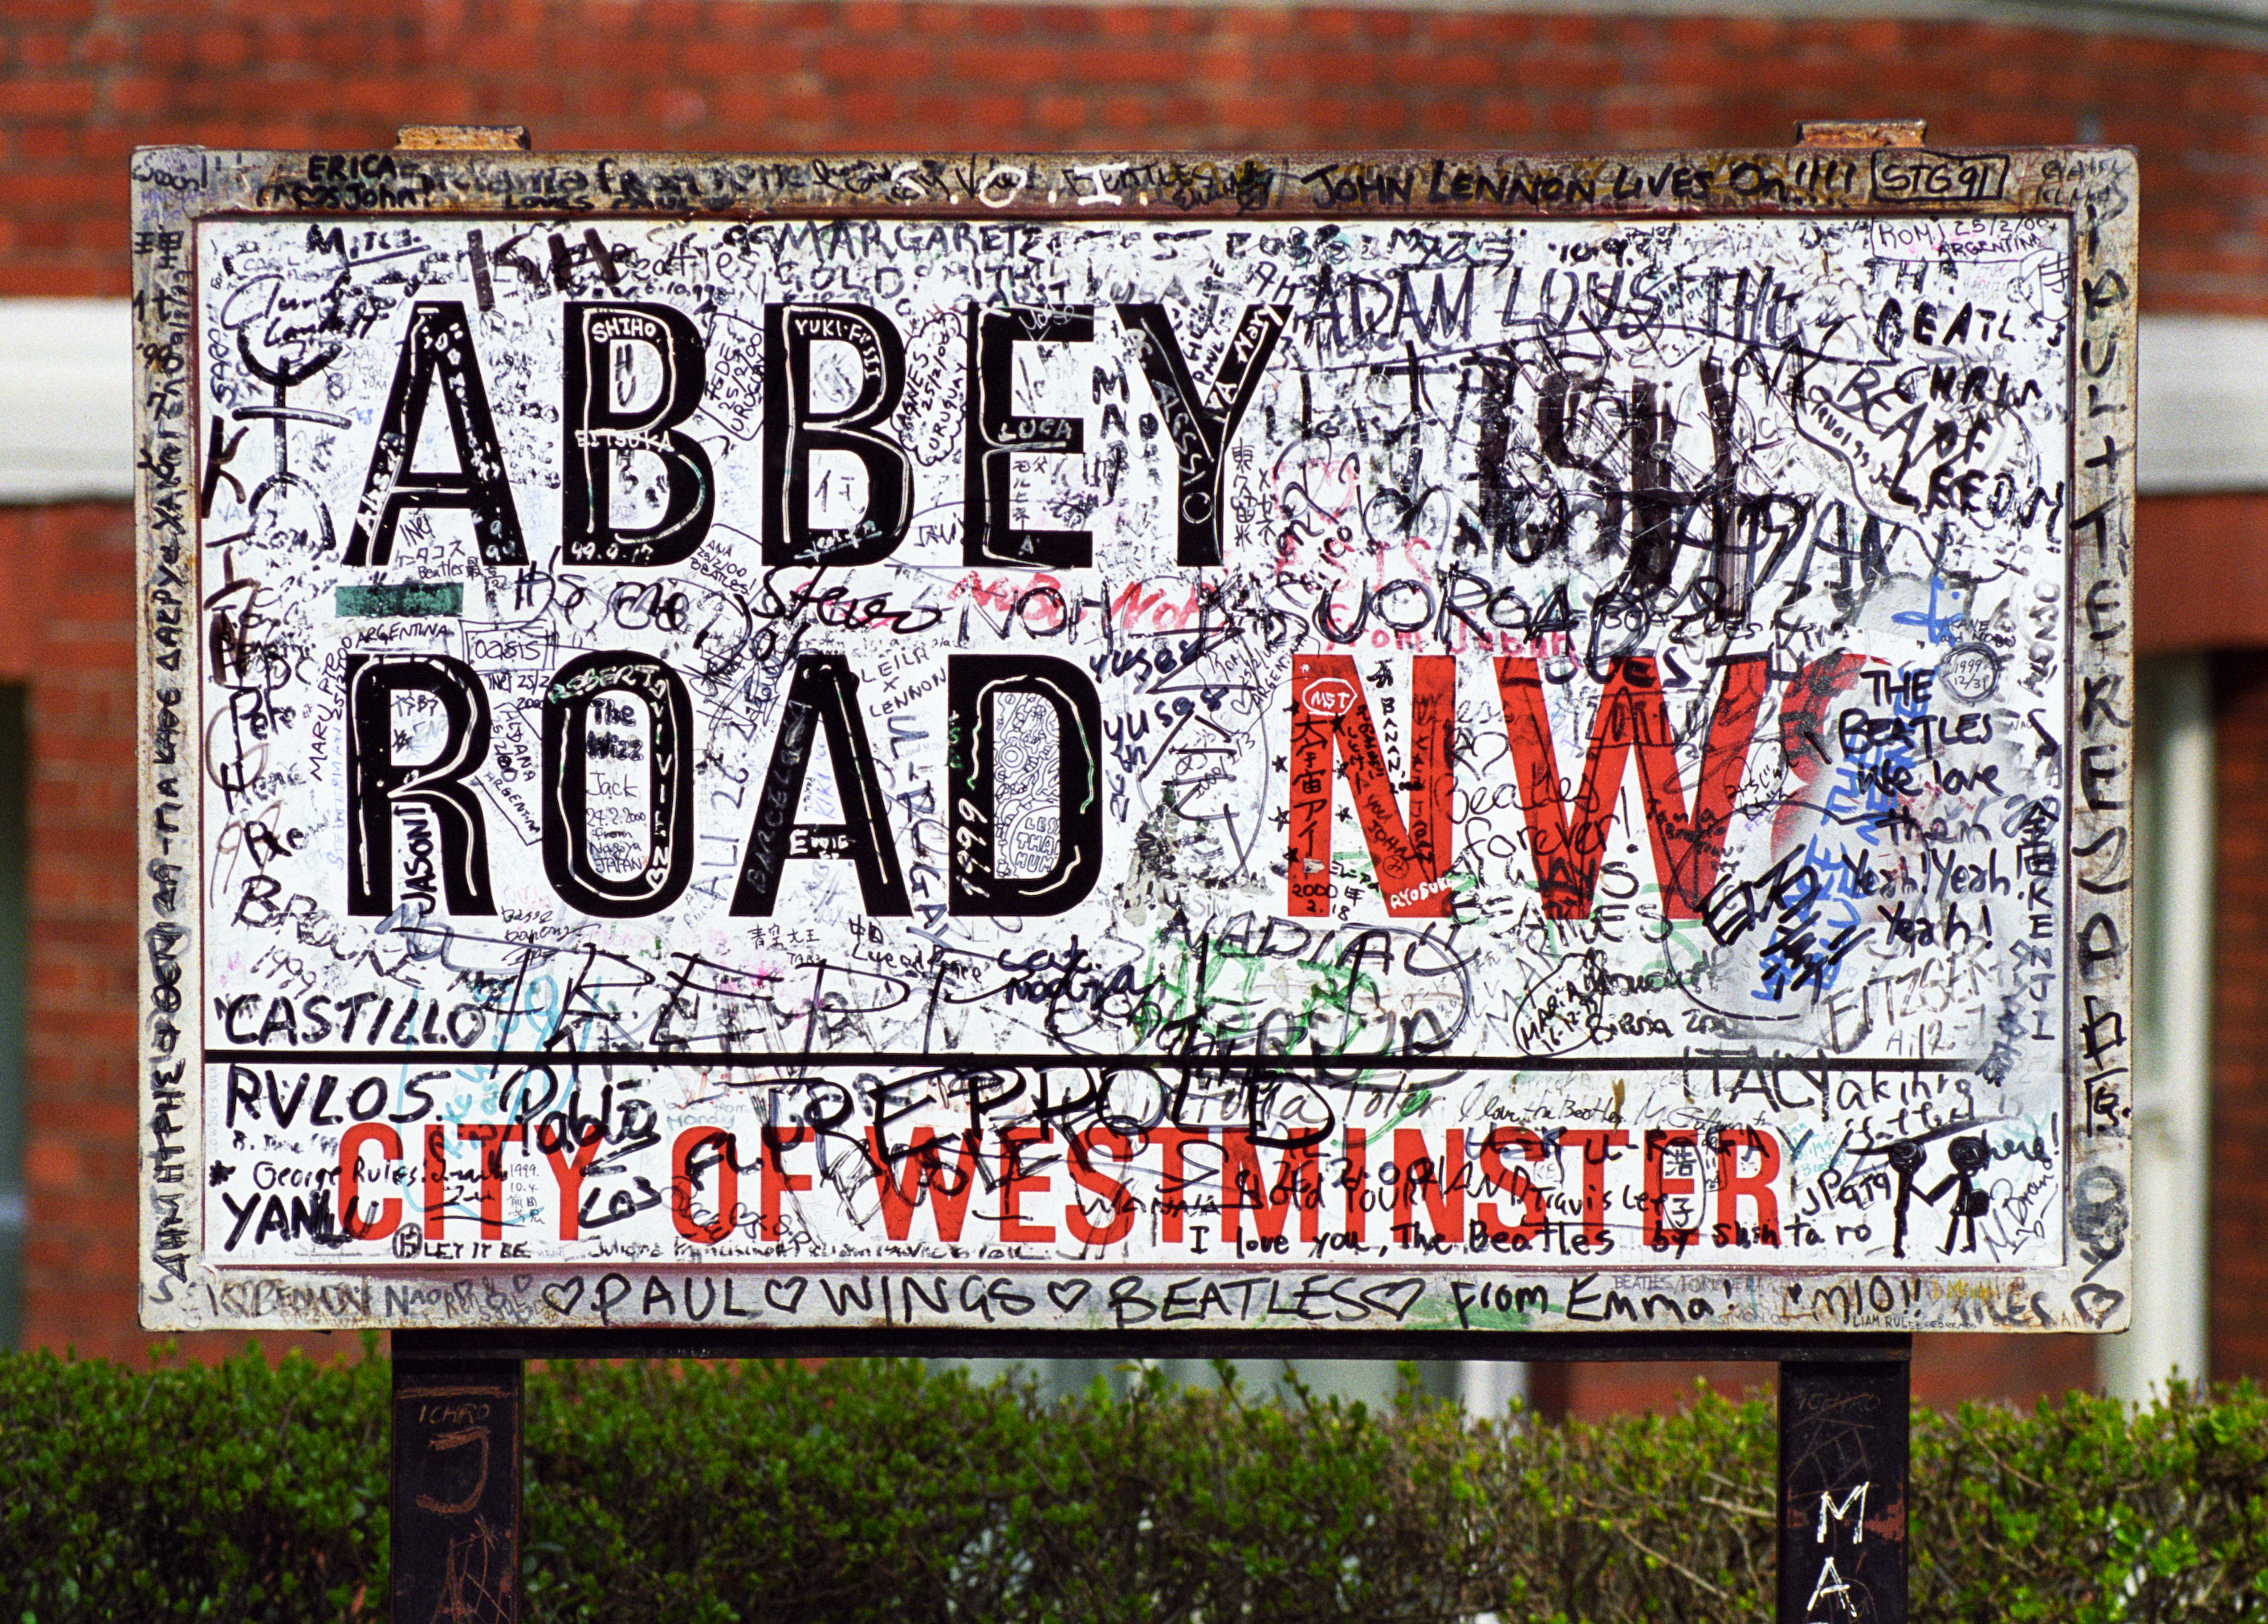 Abbey Road road sign (with graffiti)